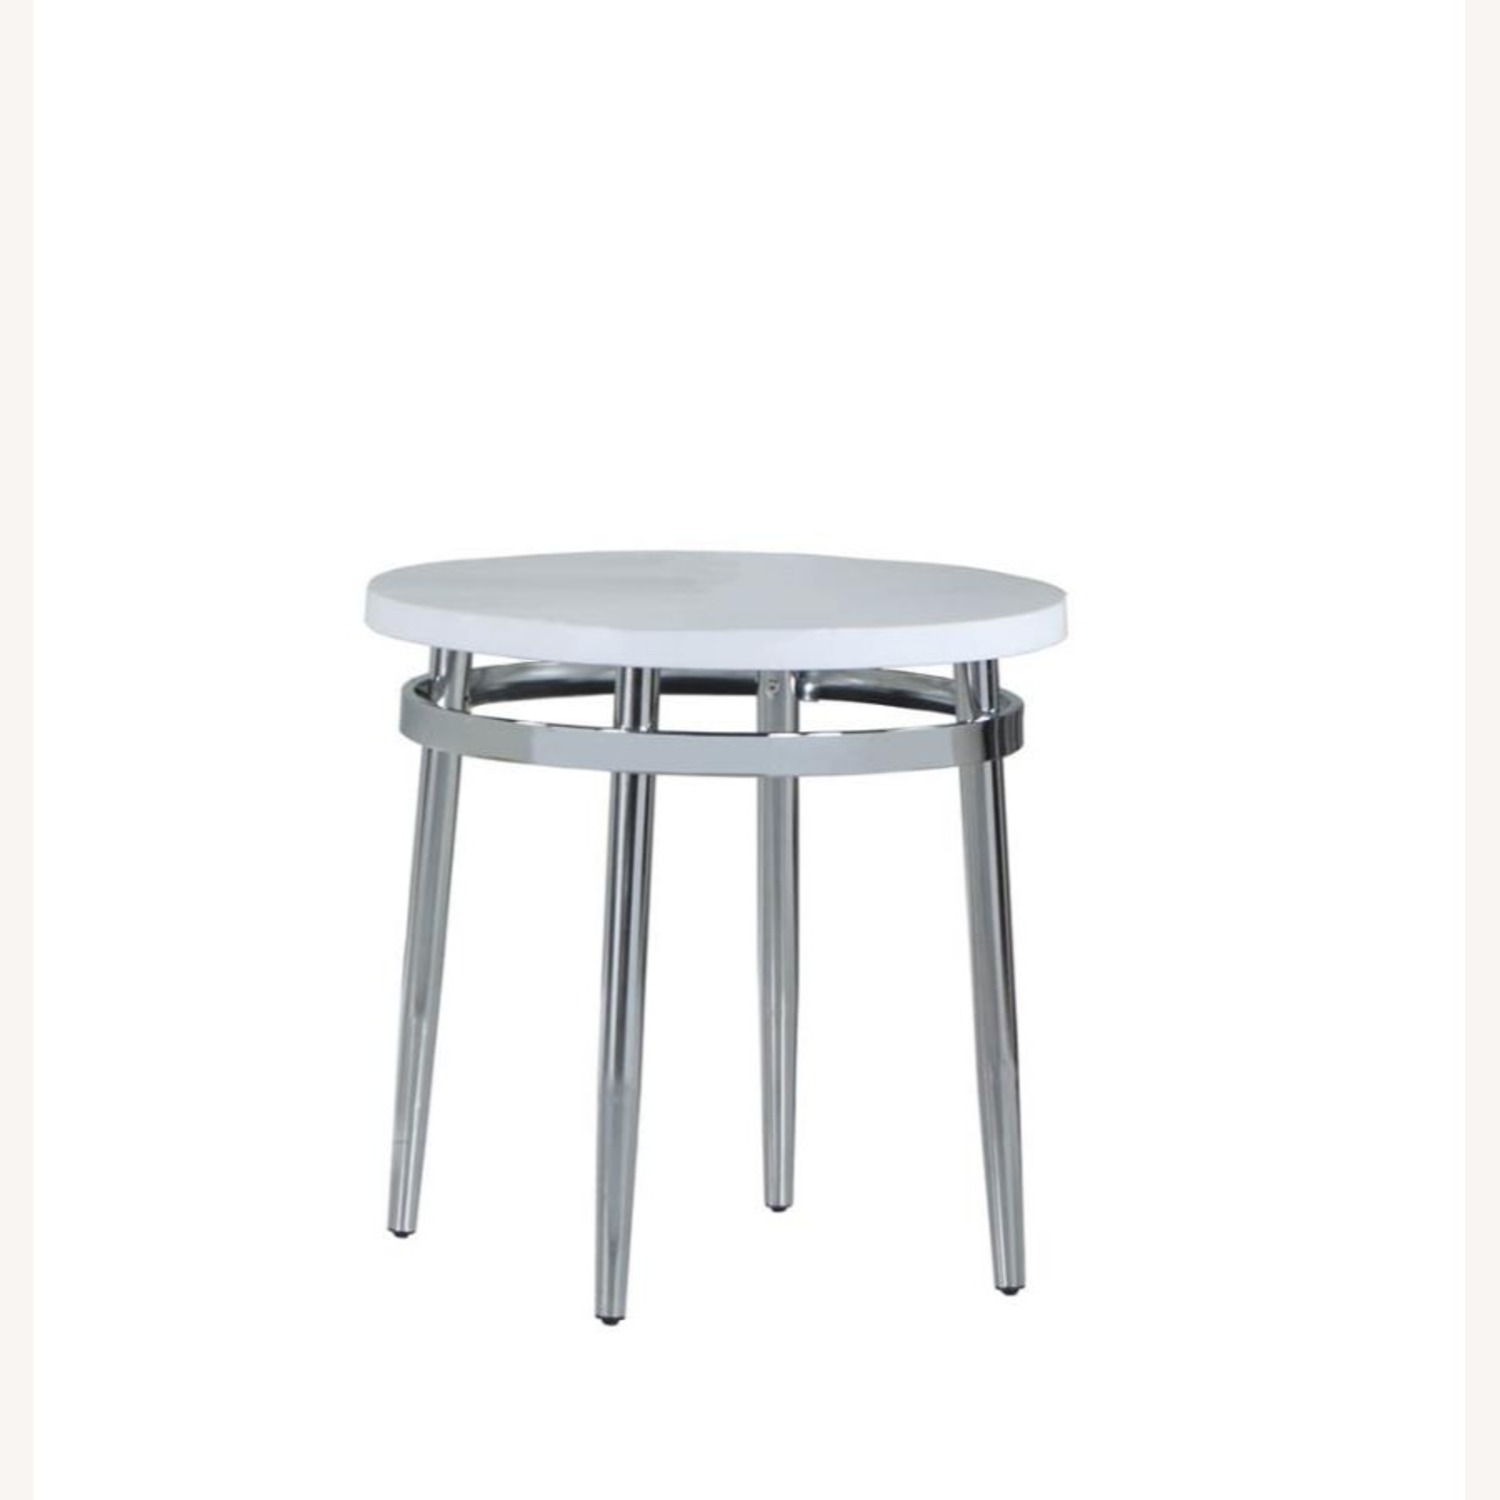 End Table In Faux Carrara Marble Top - image-0